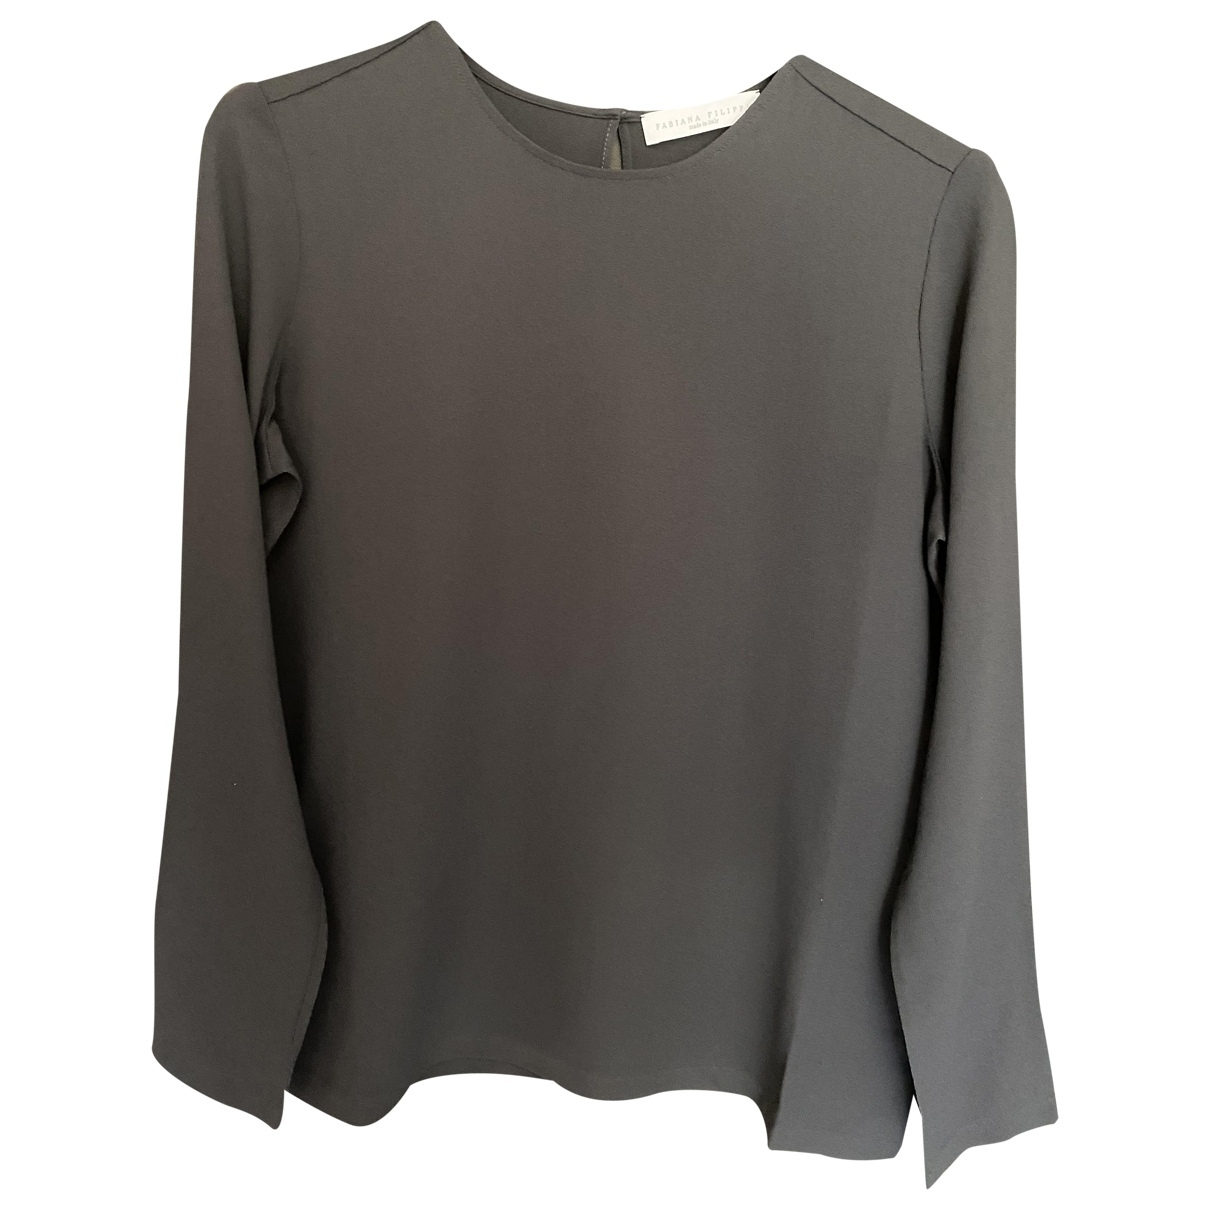 Fabiana Filippi \N Anthracite Silk  top for Women 38 IT